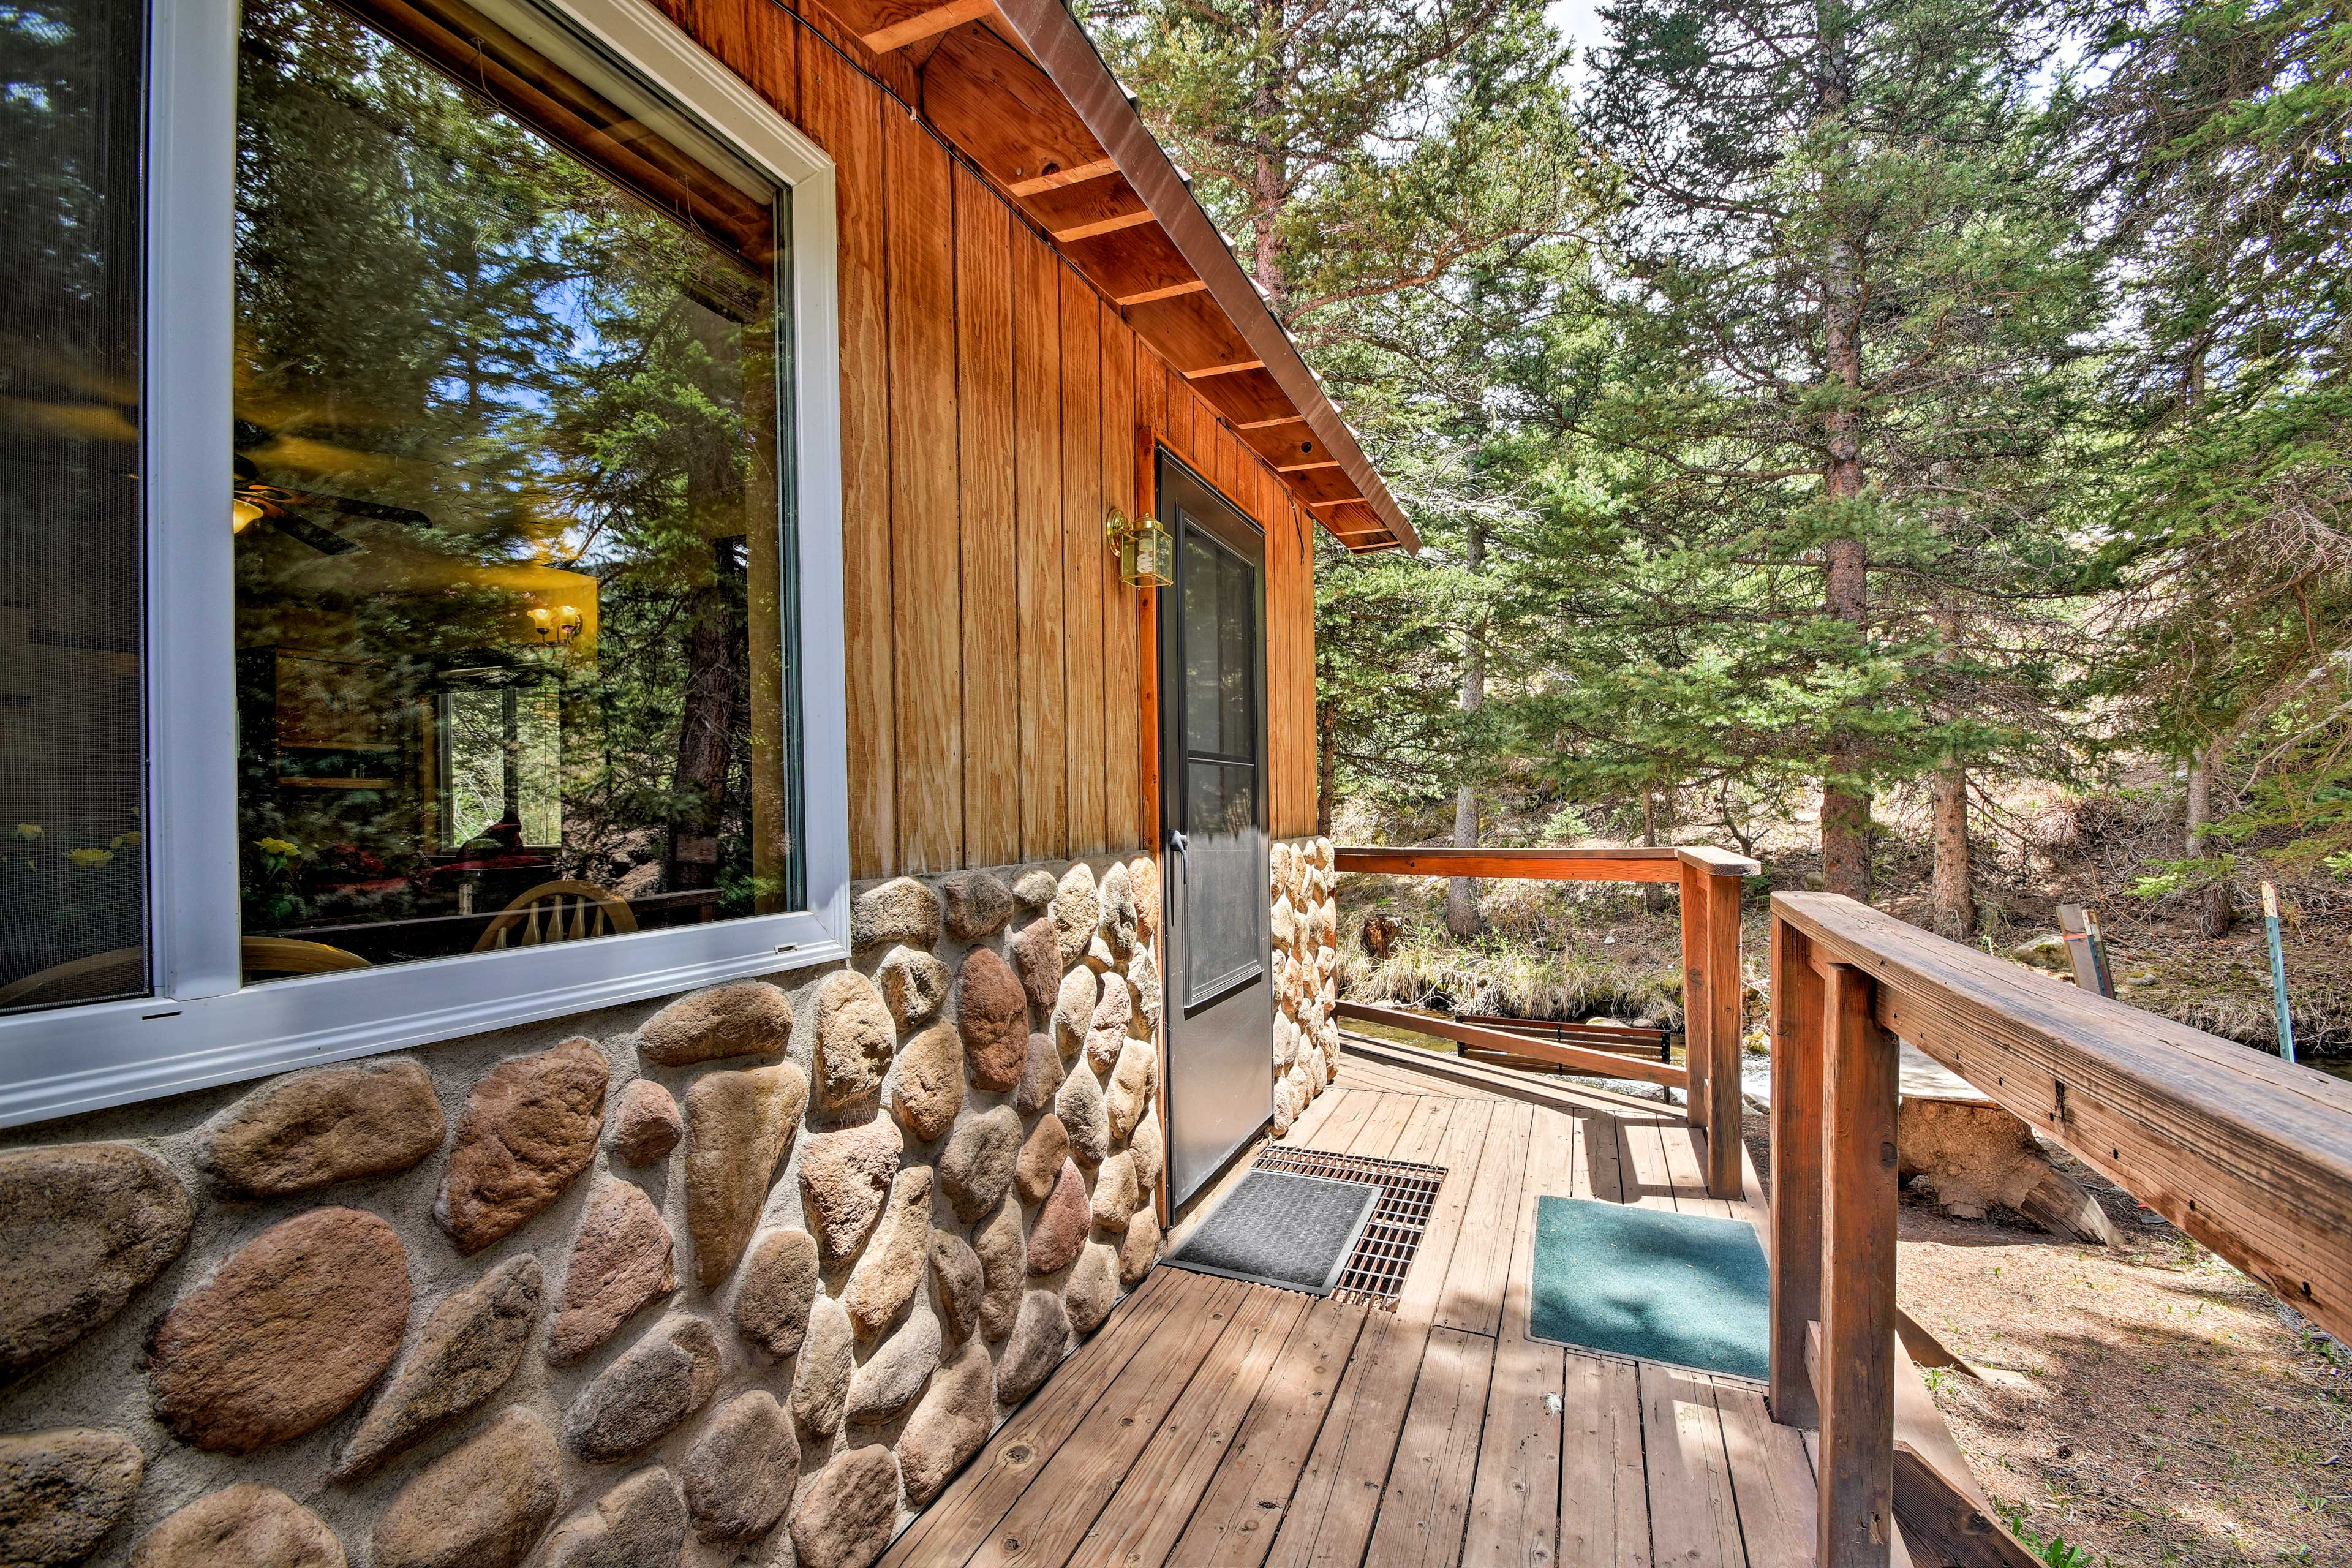 This rustic cabin is a quintessential mountain retreat.